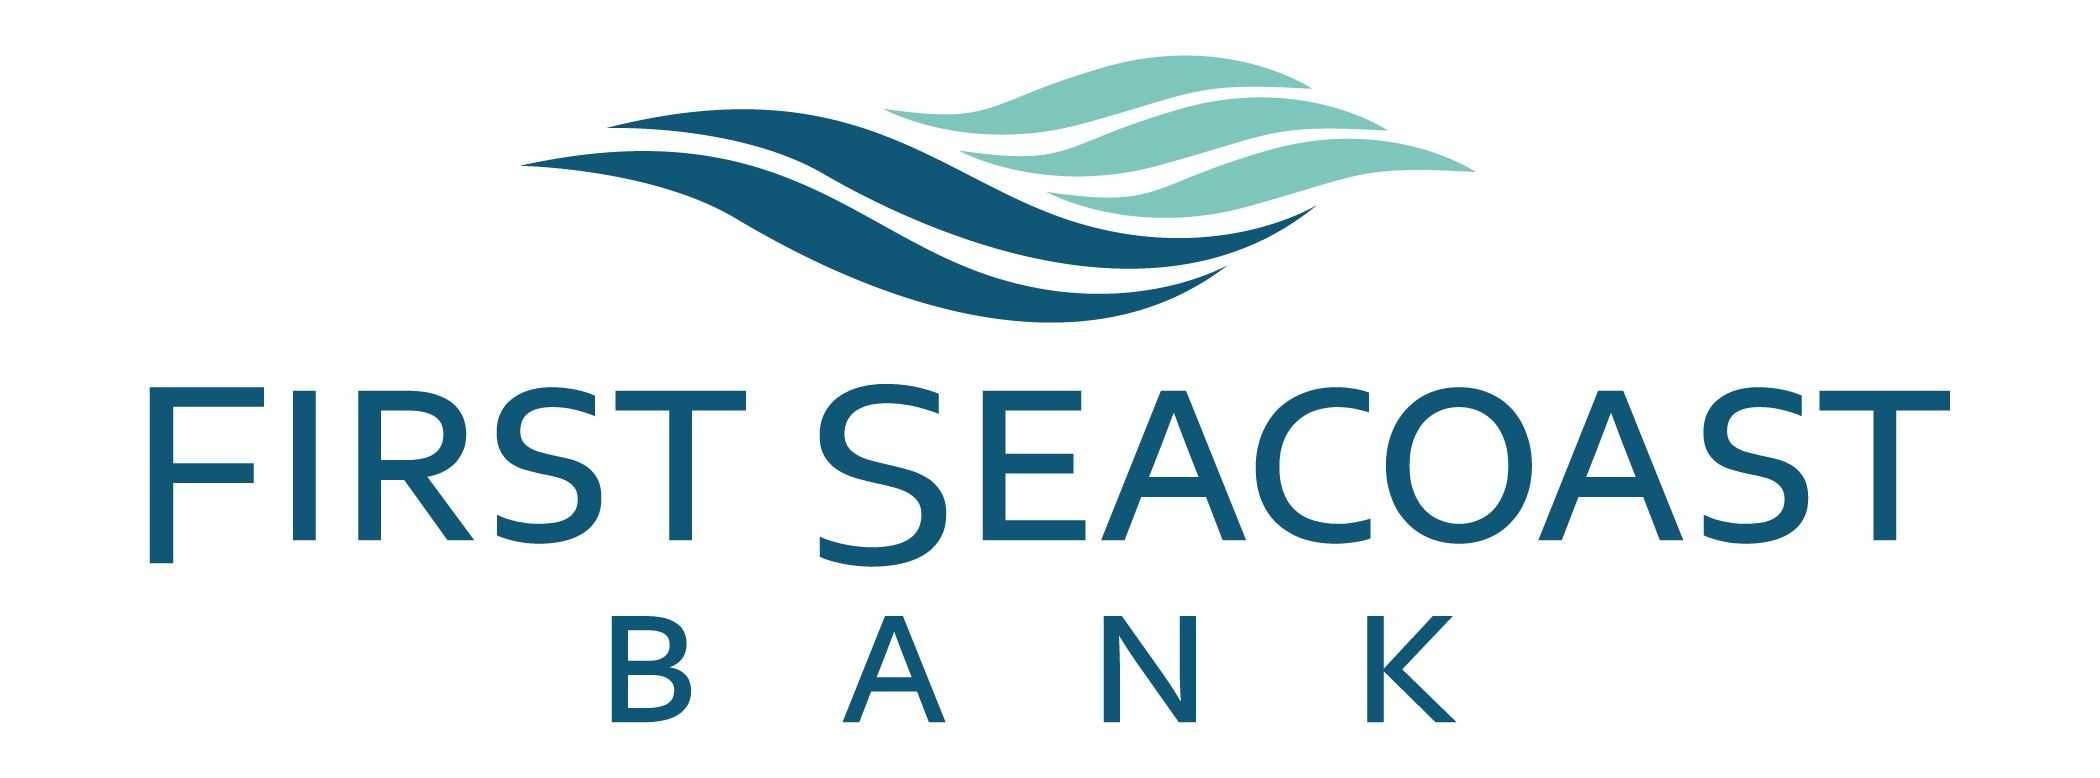 Firstseacoastbank